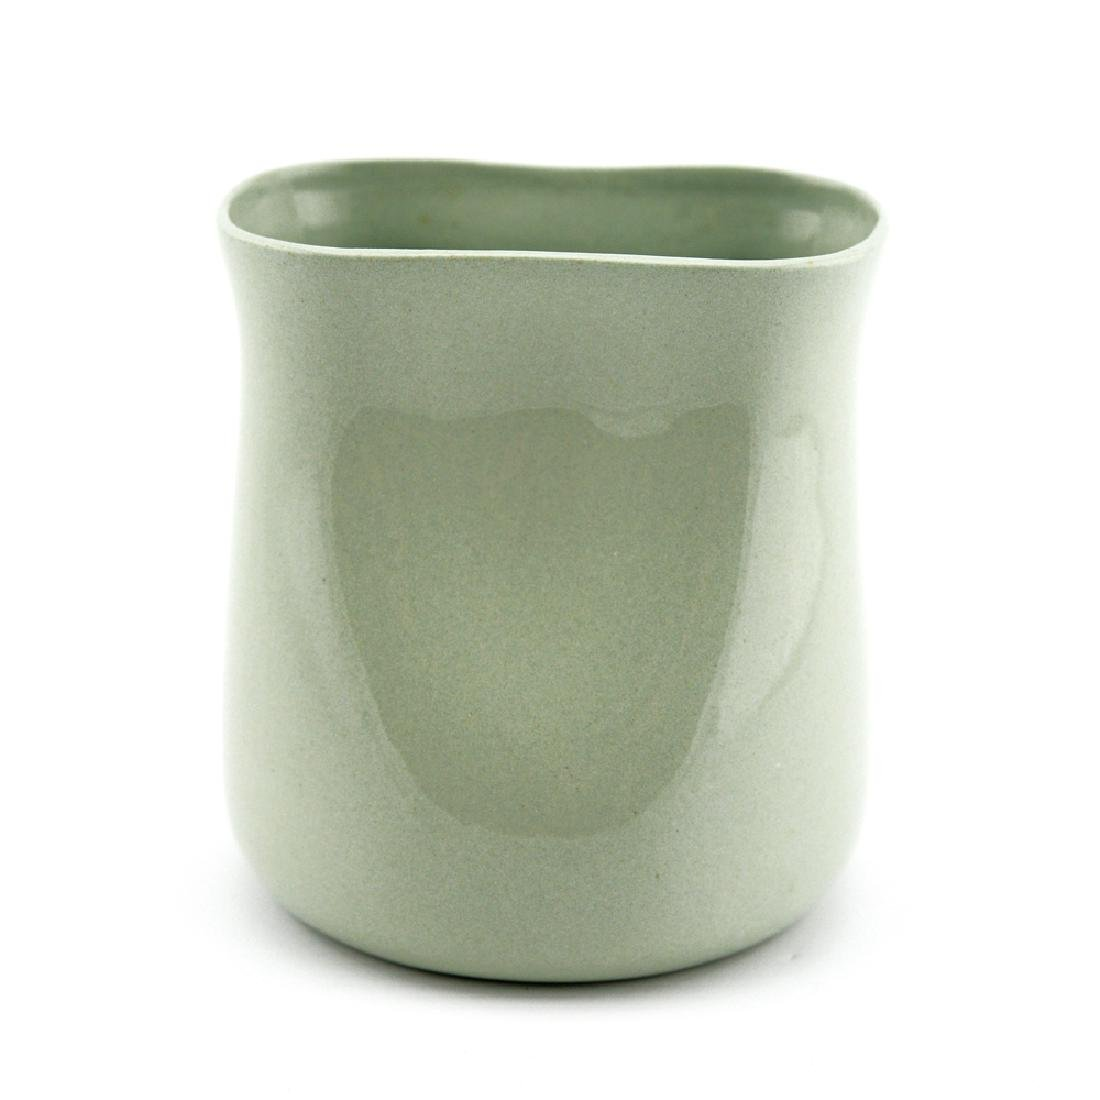 Eva Zeisel, Rare Riverside Vase in Avocado Green